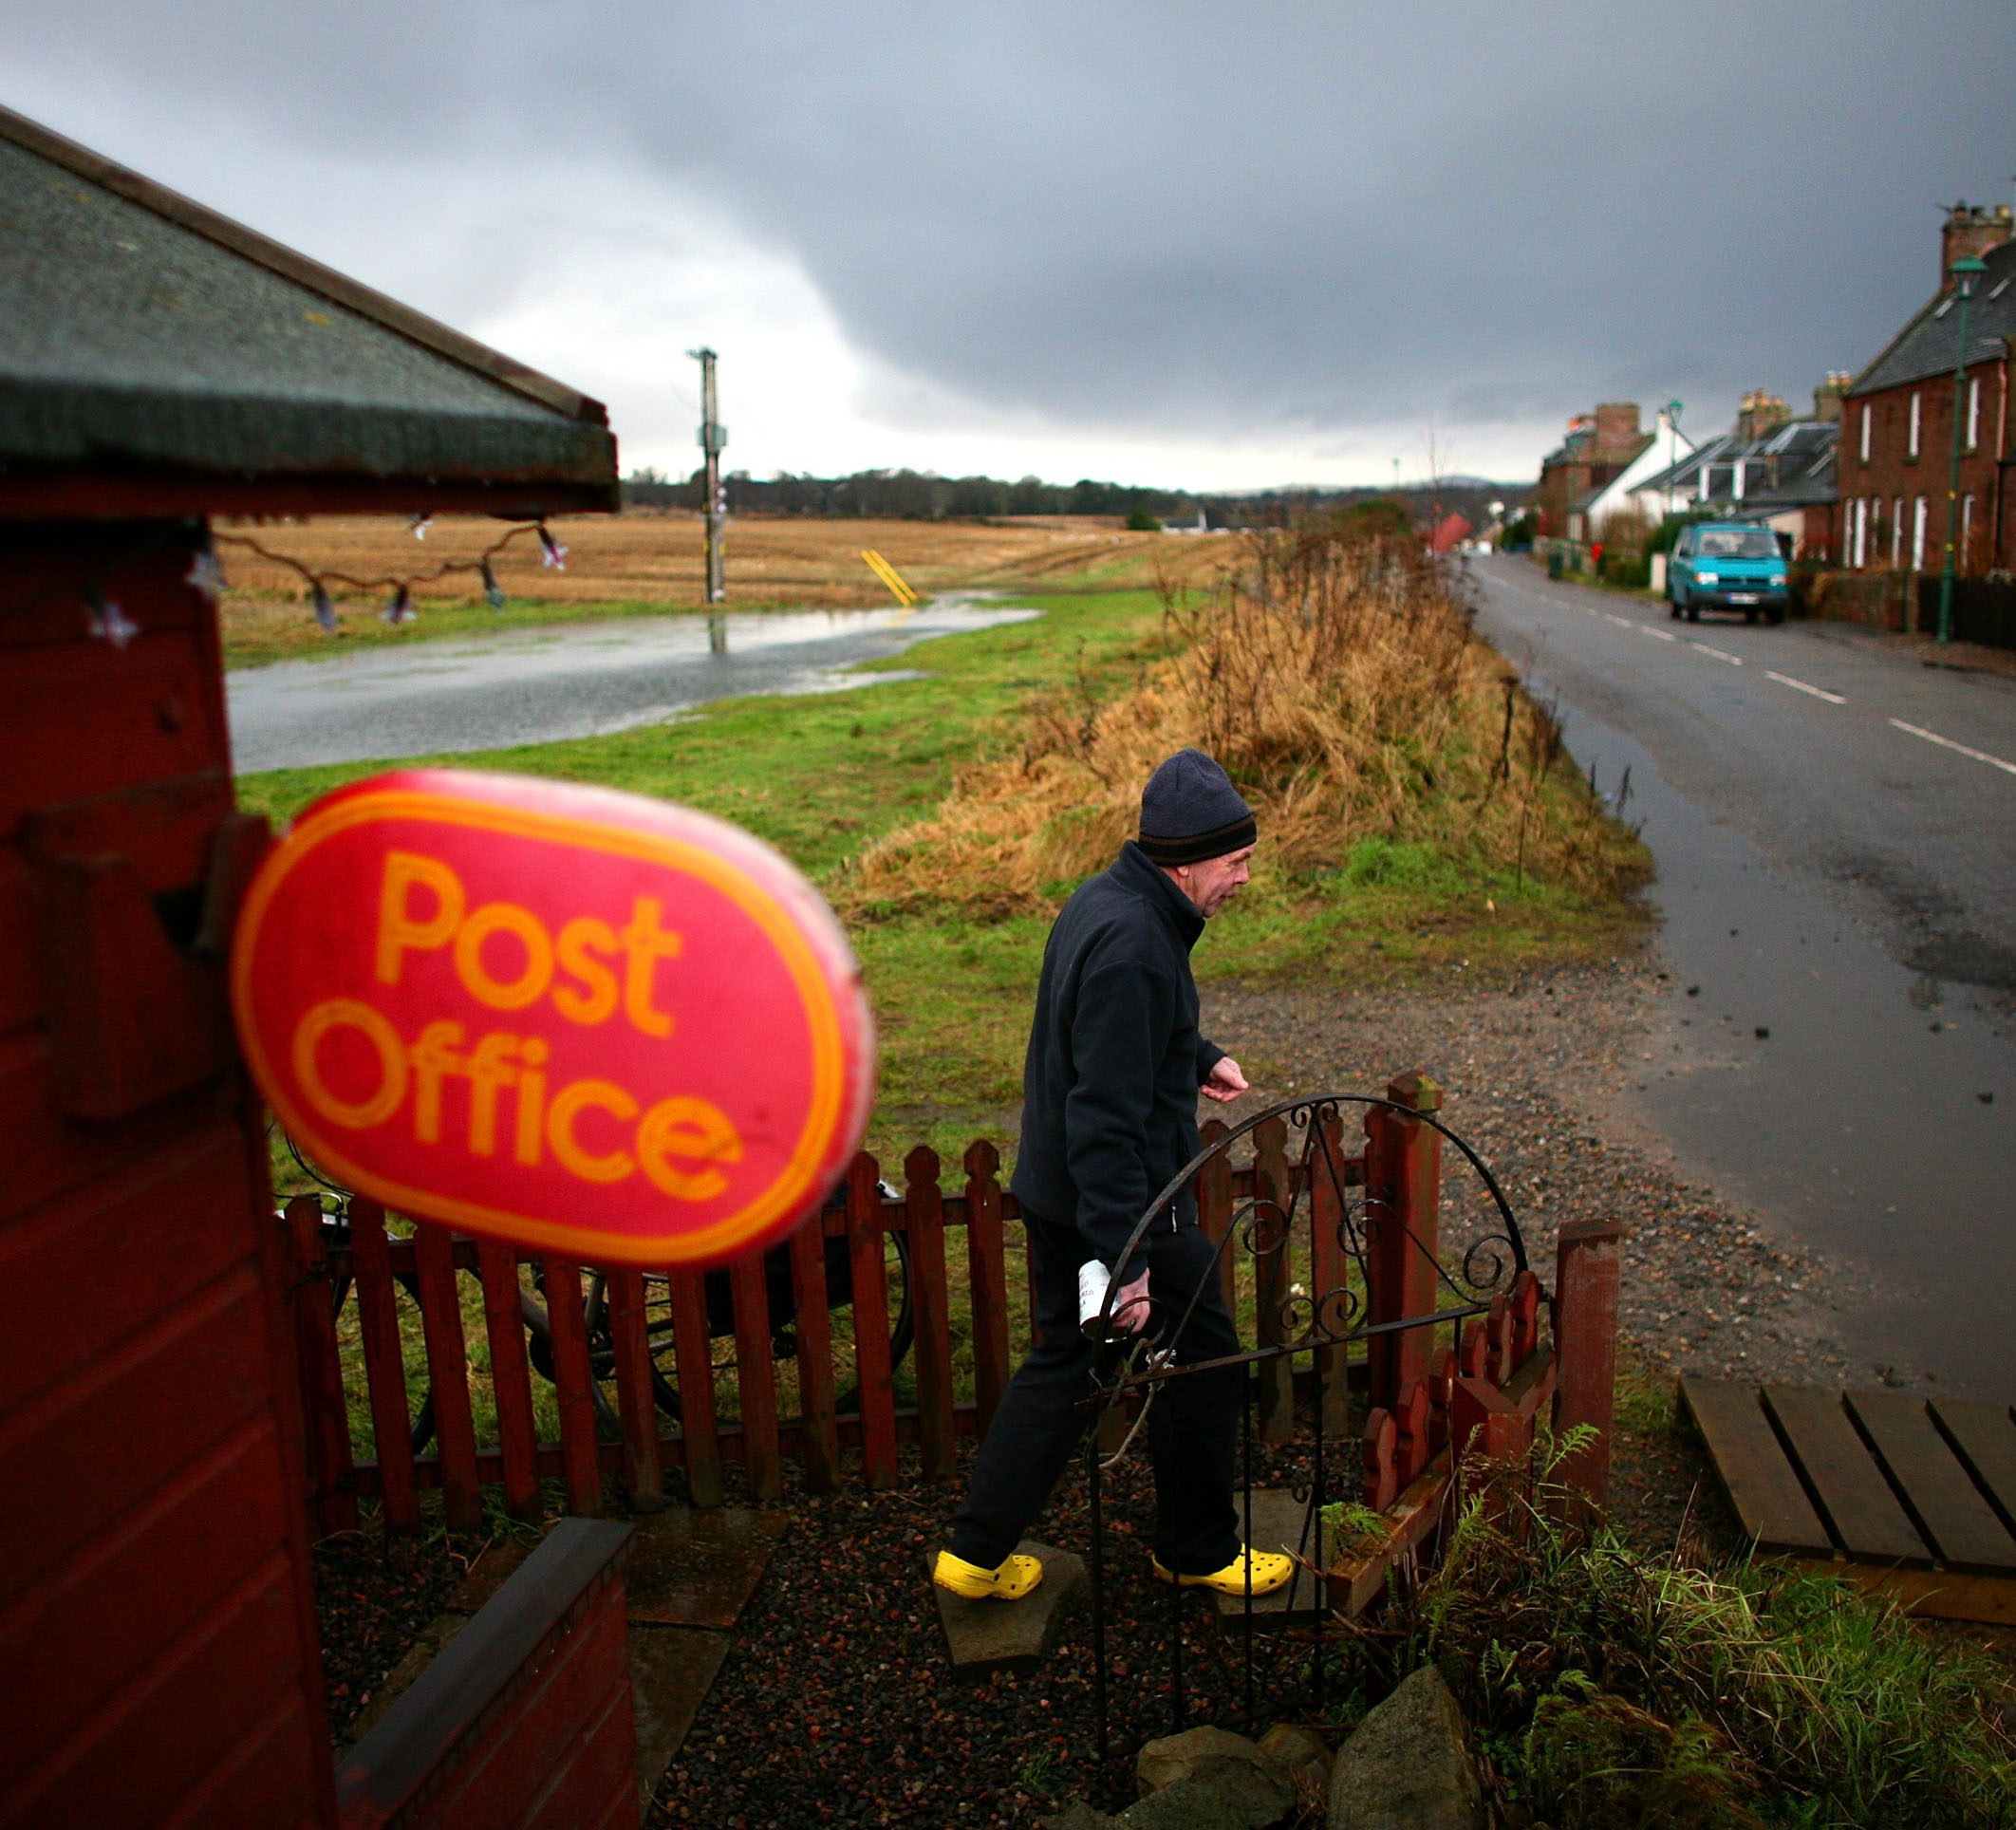 INVERNESS, UNITED KINGDOM - FEBRUARY 04: 2A customer walks out of Ponyntzfield Post Office, February 4, 2008 in Inverness, Scotland. The Post Office has proposed to close many rural branches across the country, causing anger amongst isolated communities w